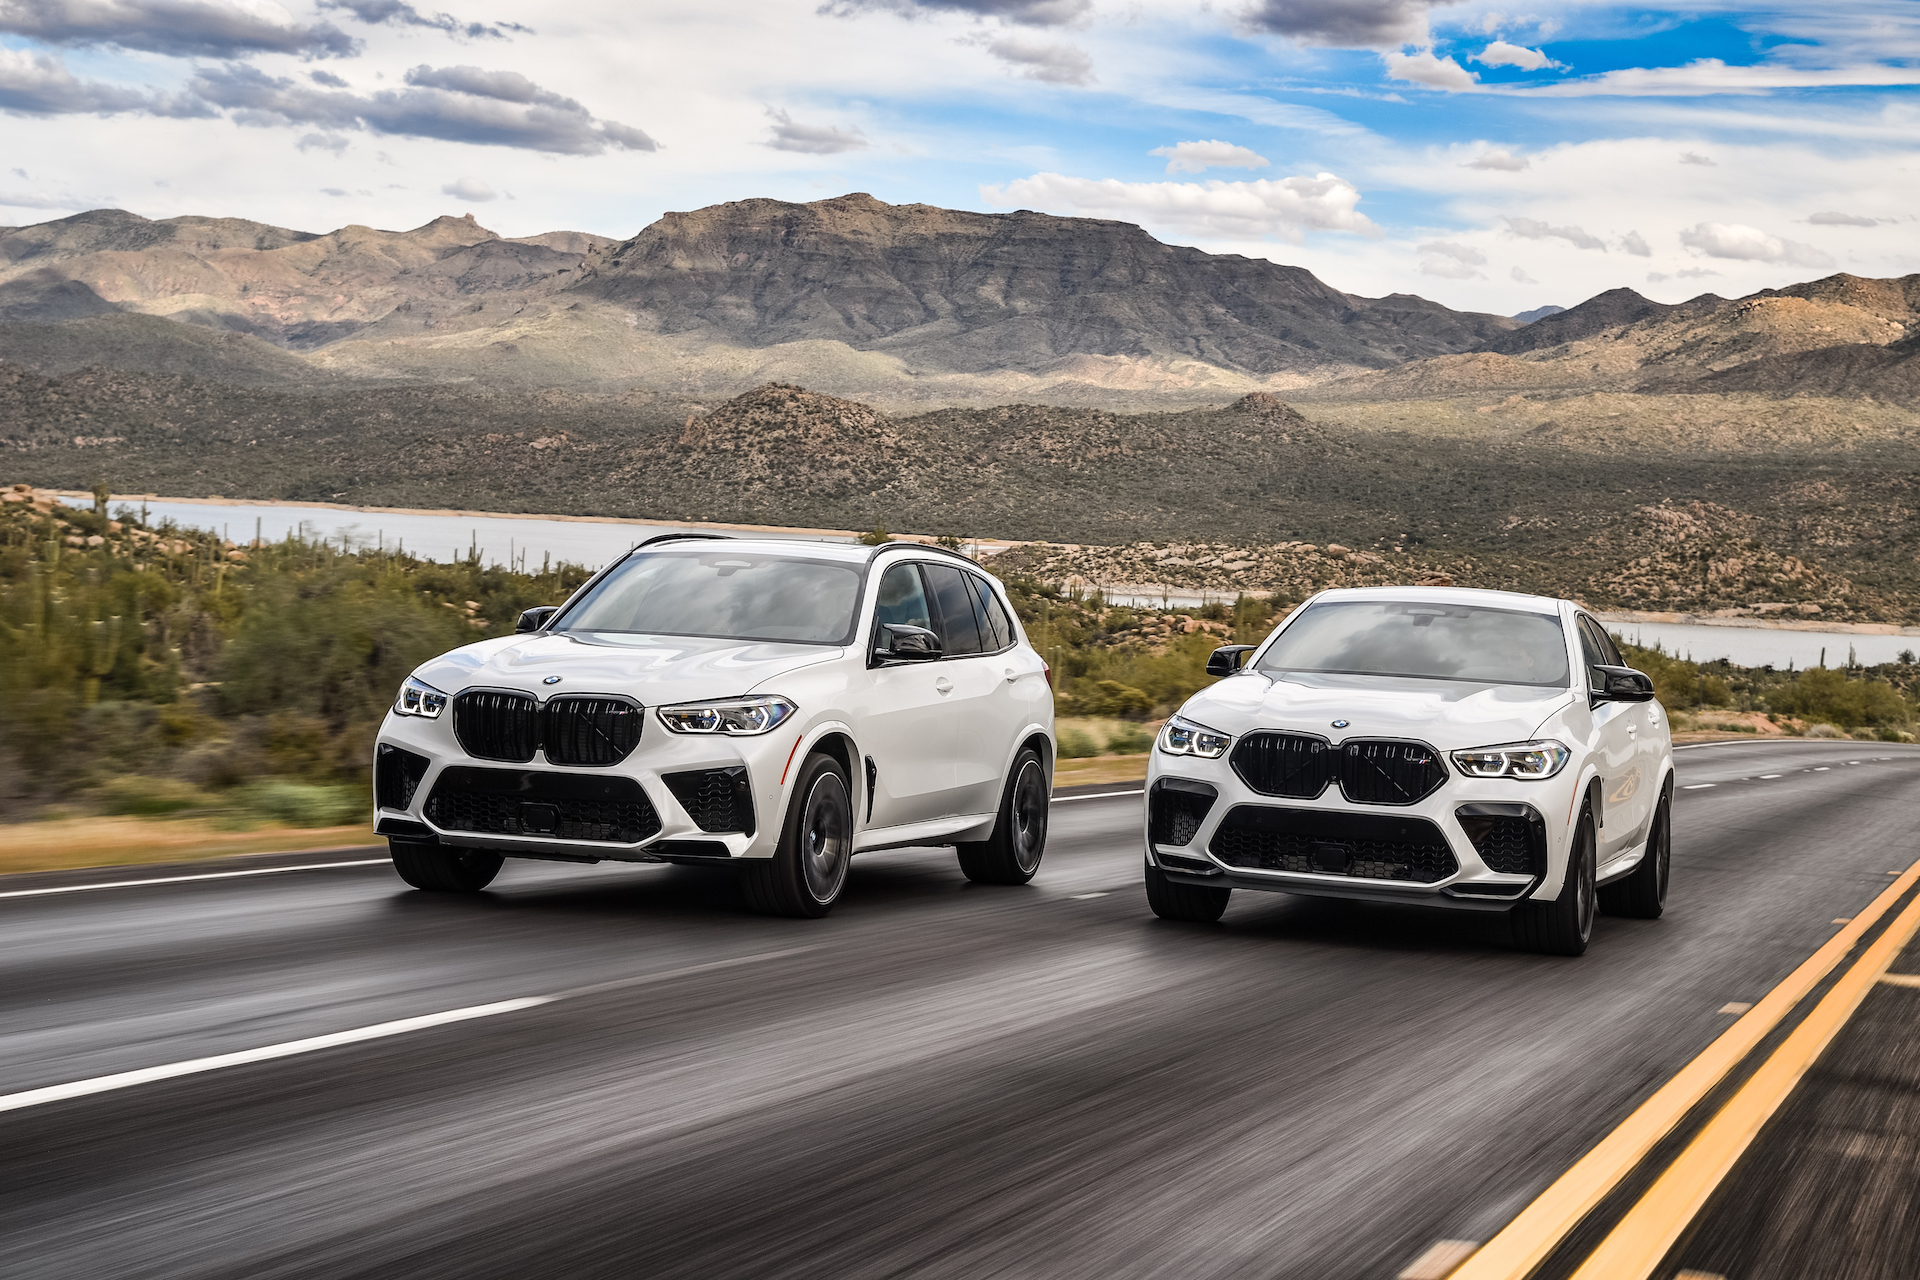 First Drive Review 2020 Bmw X5 M And X6 M Are Beasts In Search Of A Track